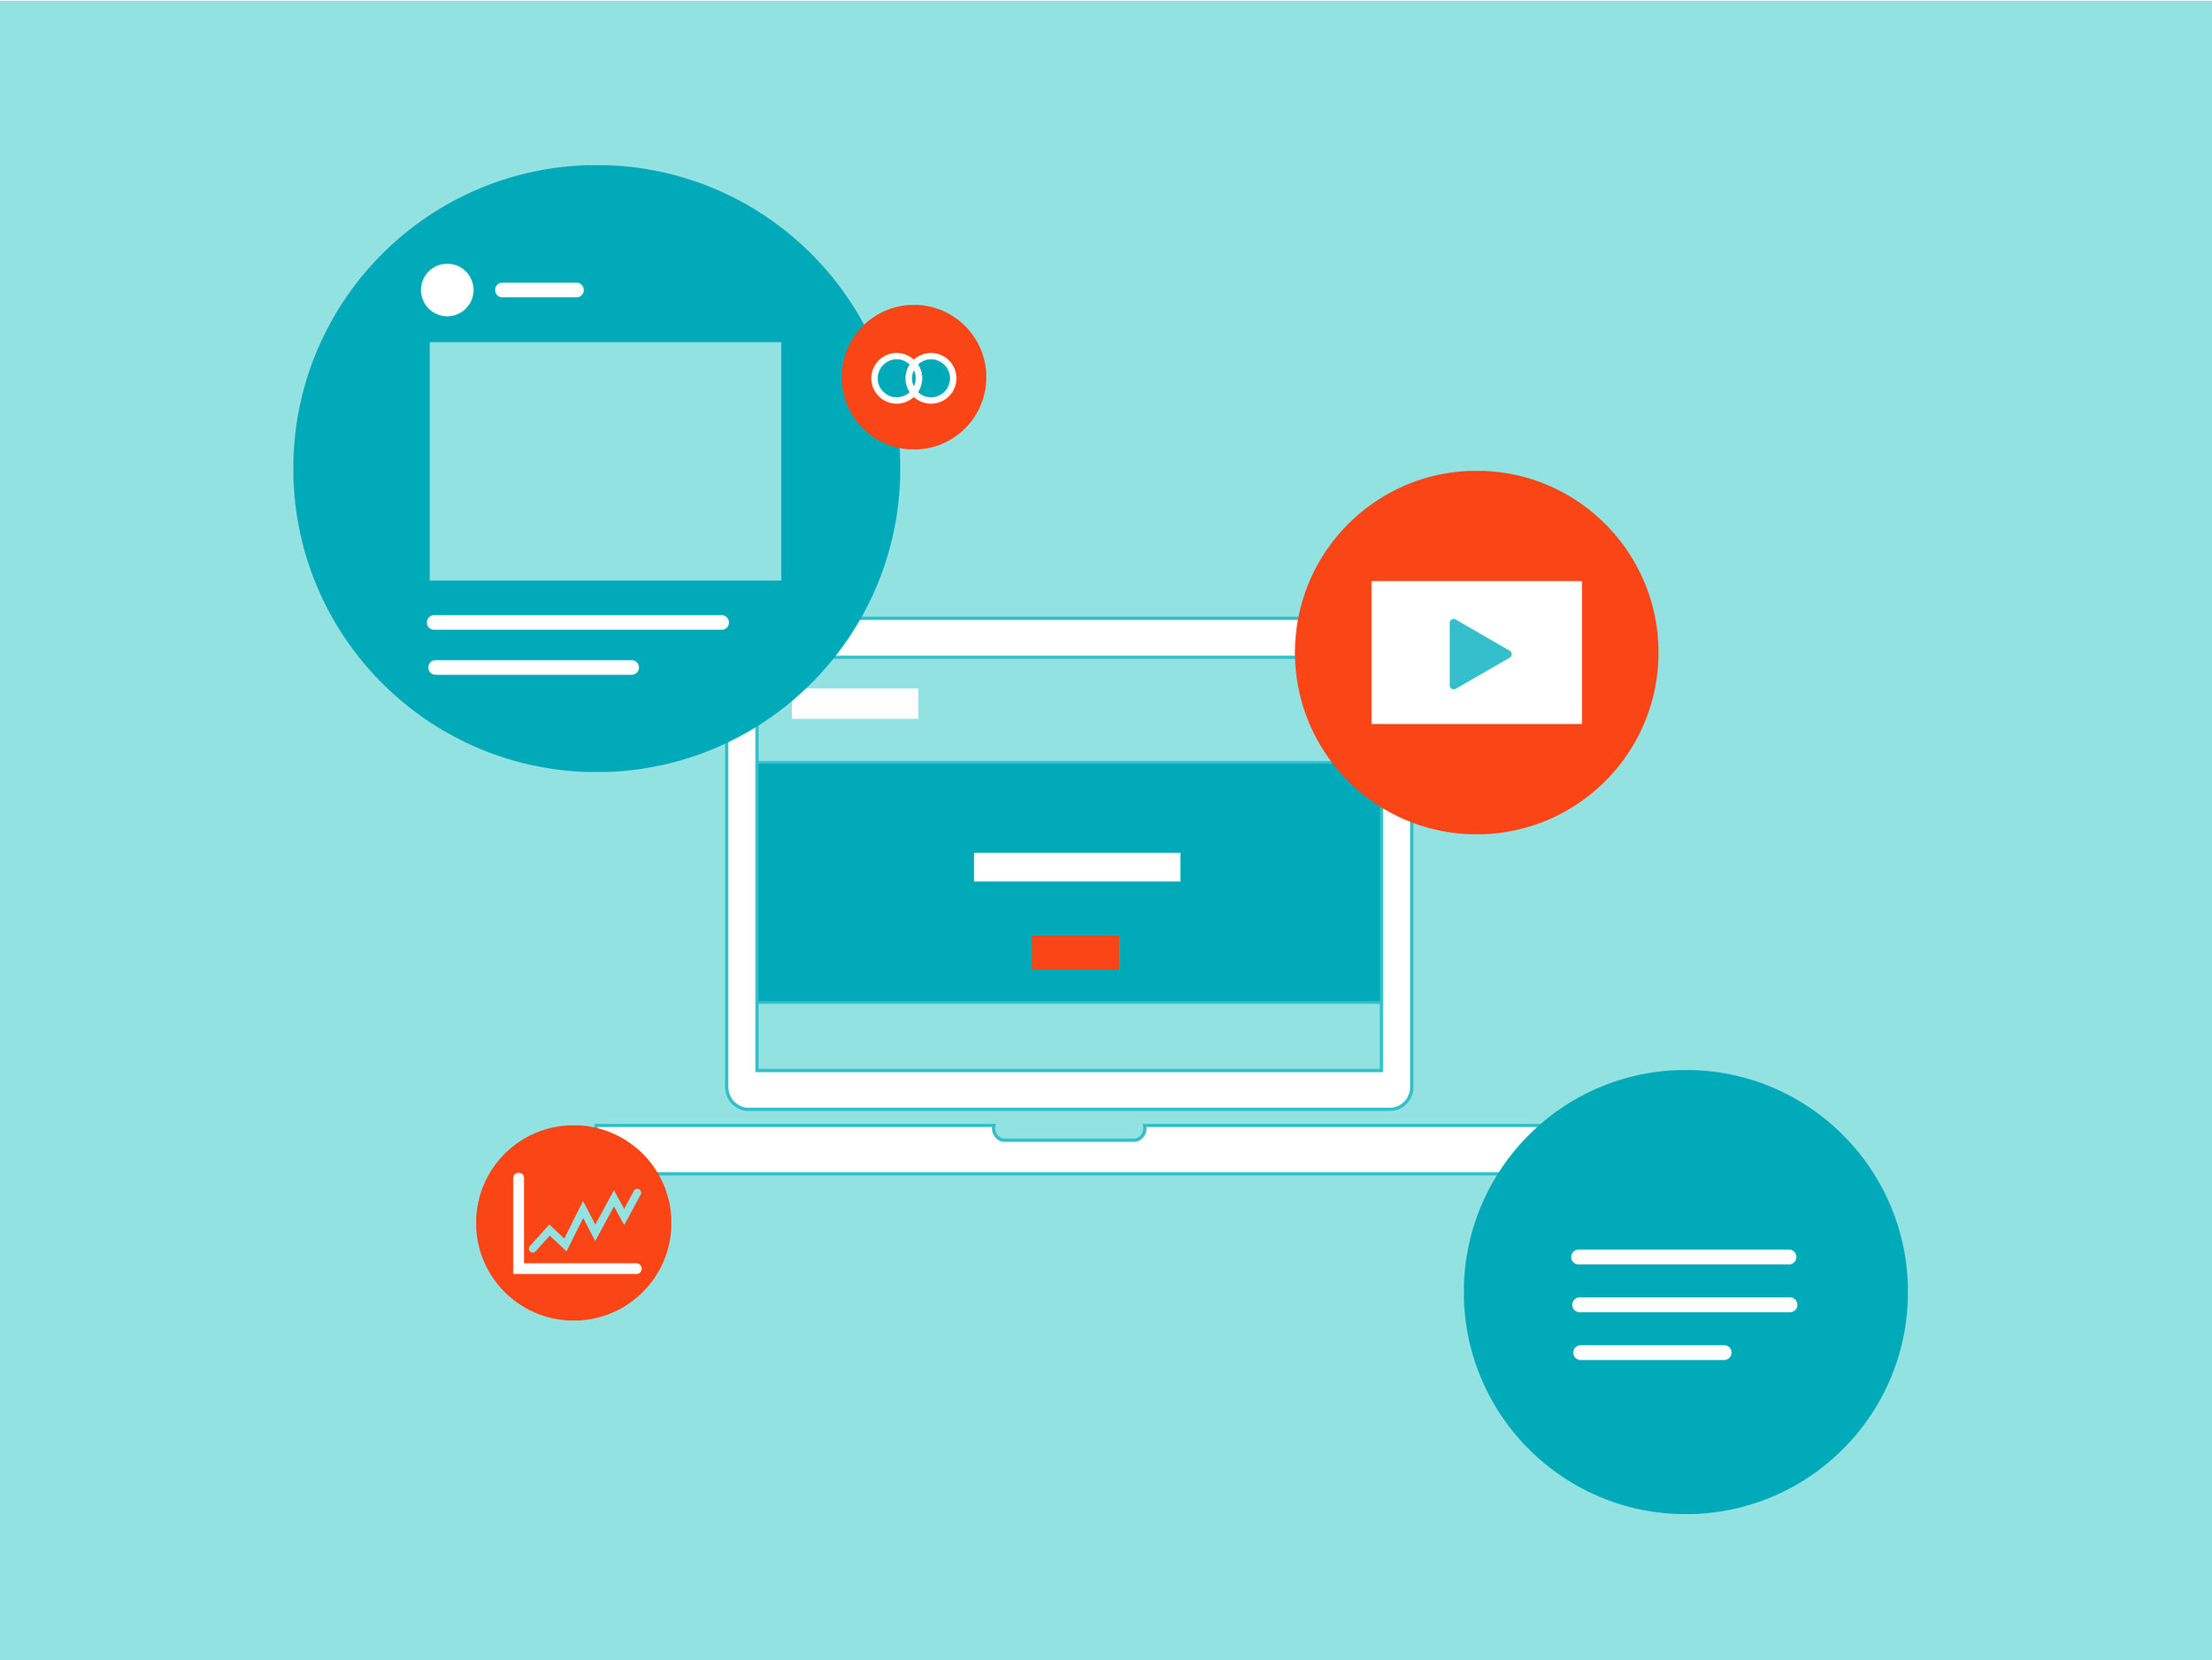 How do you evaluate the effectiveness. of digital content?